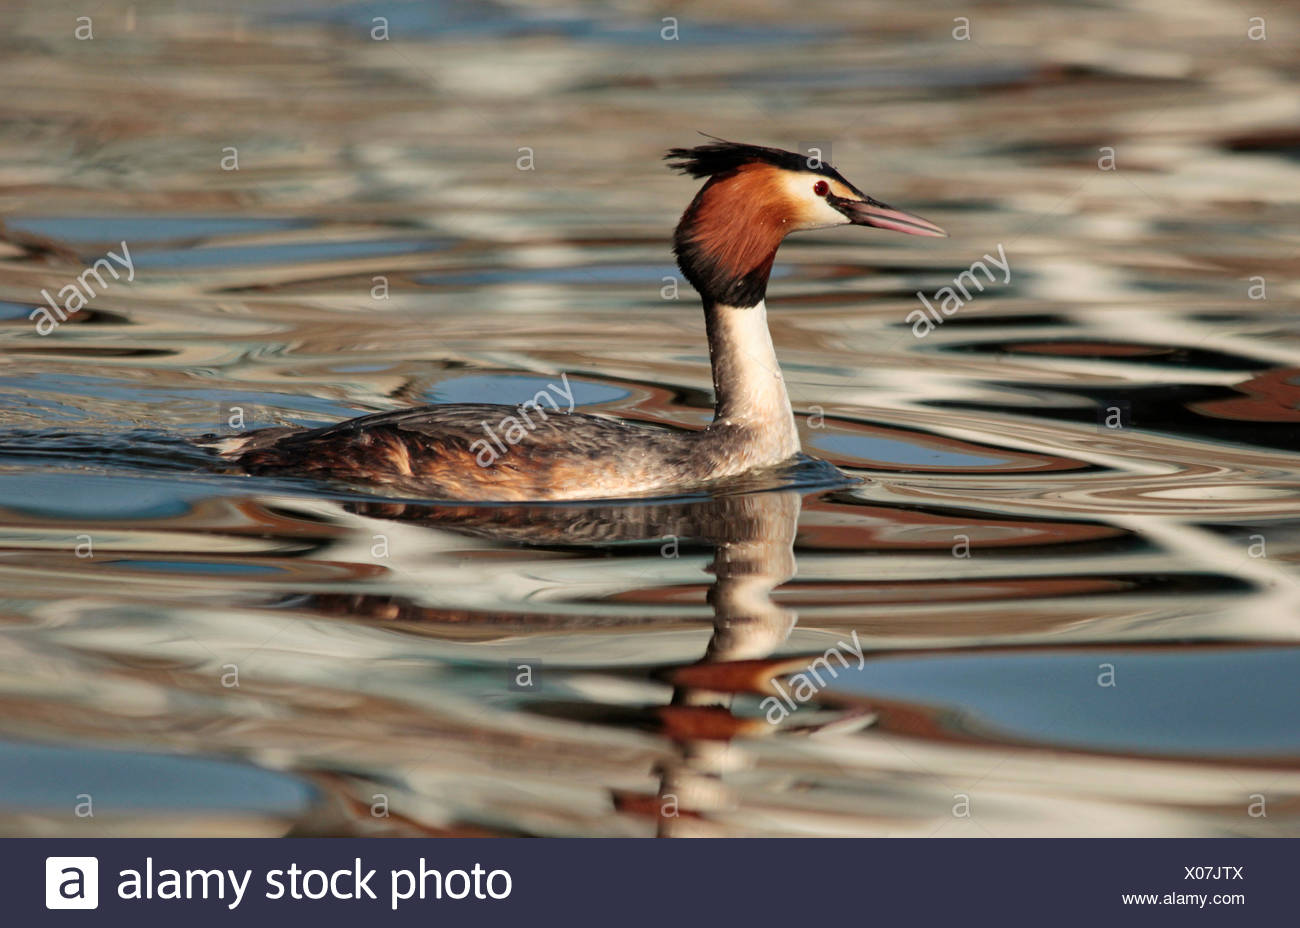 Great Crested Grebe swimming in an harbour. - Stock Image